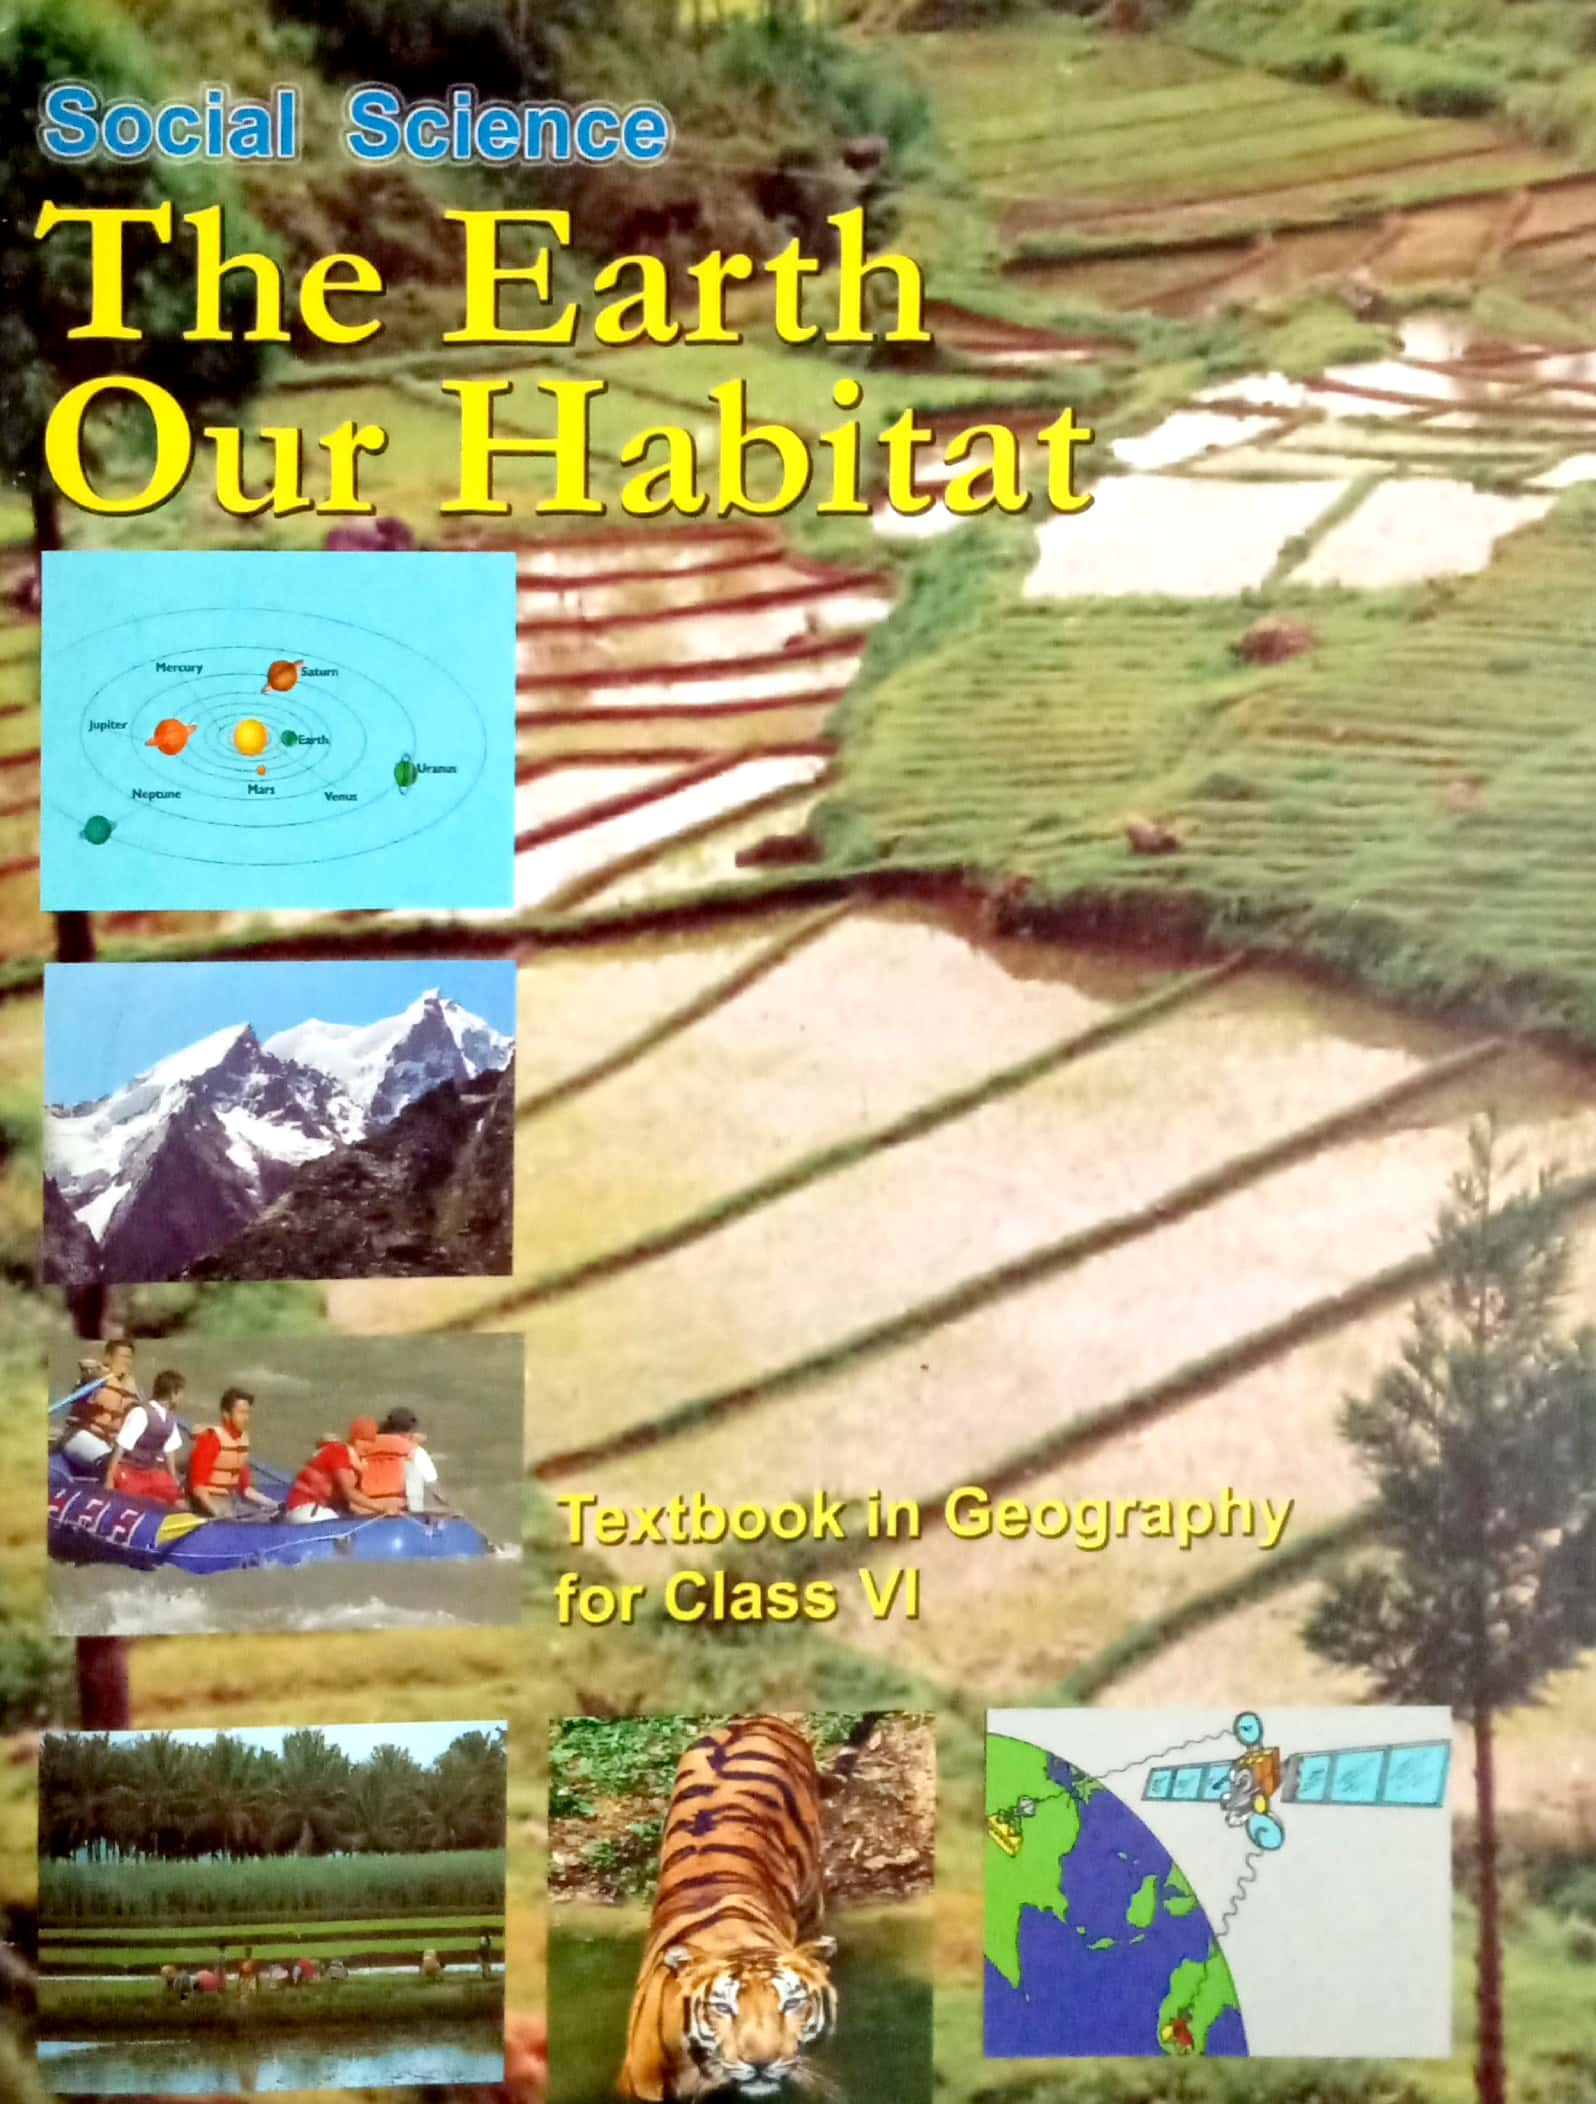 The Earth Our Habitat